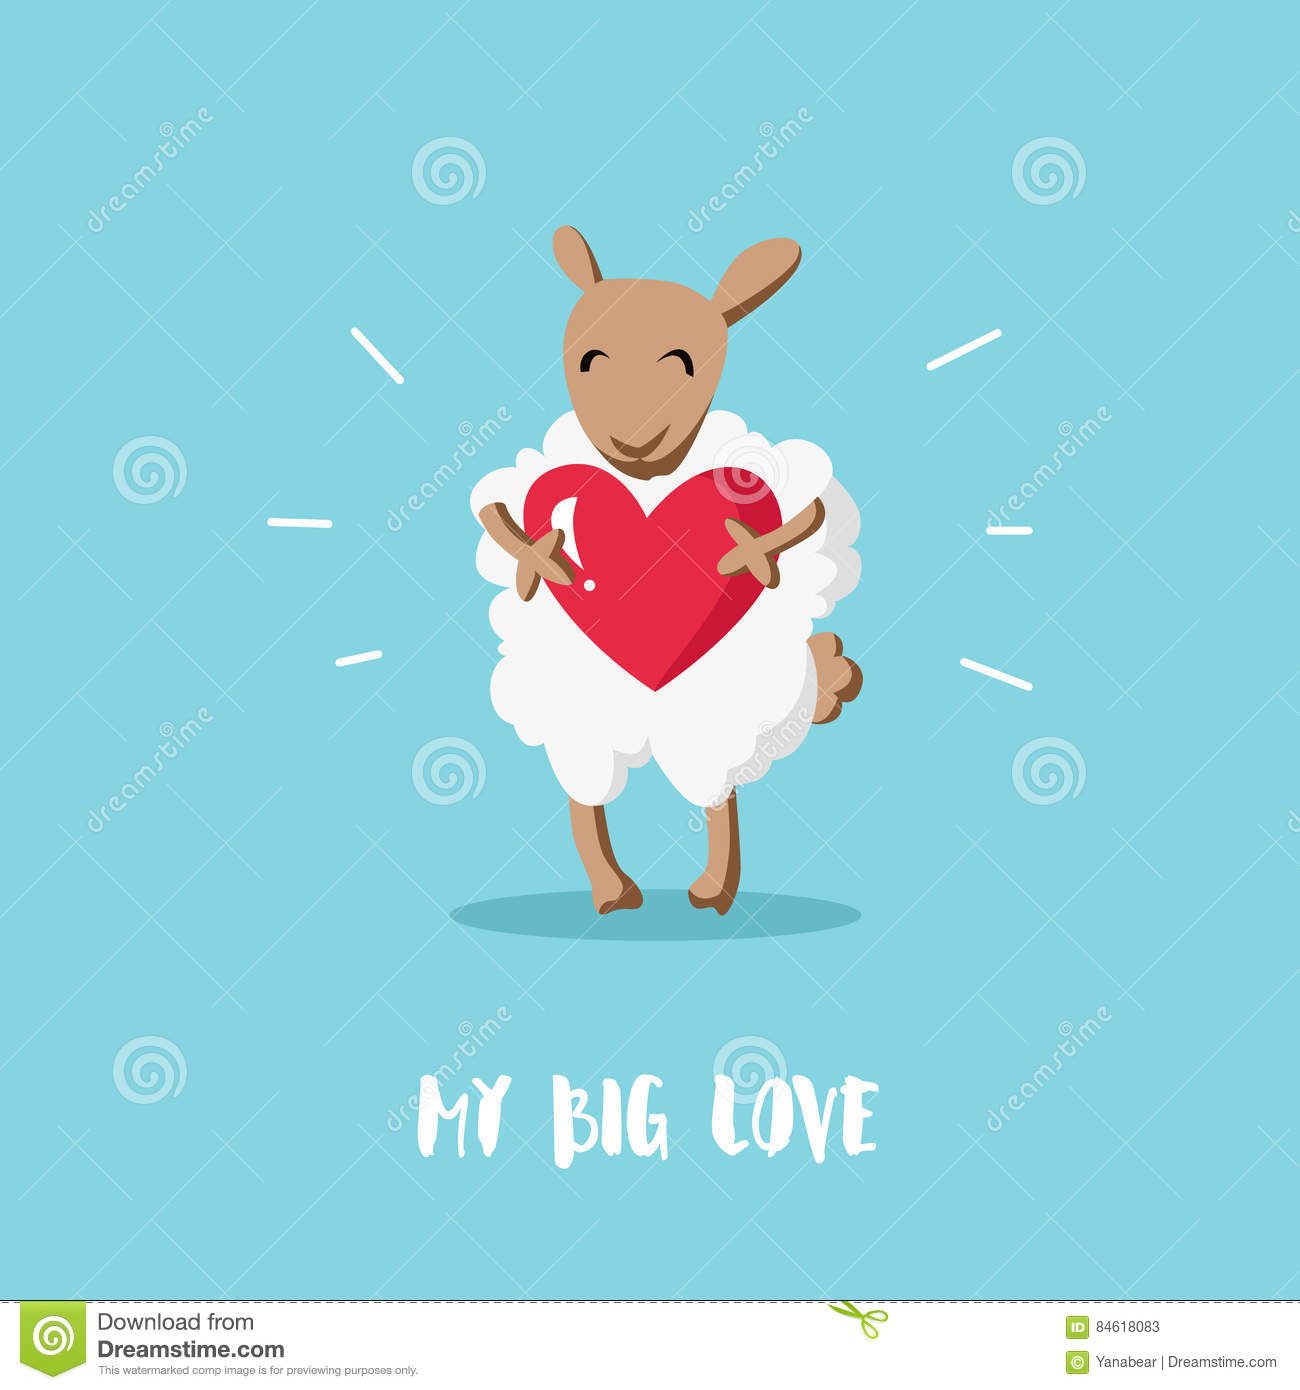 Cute Sheep In Flat Style Vector Illustration